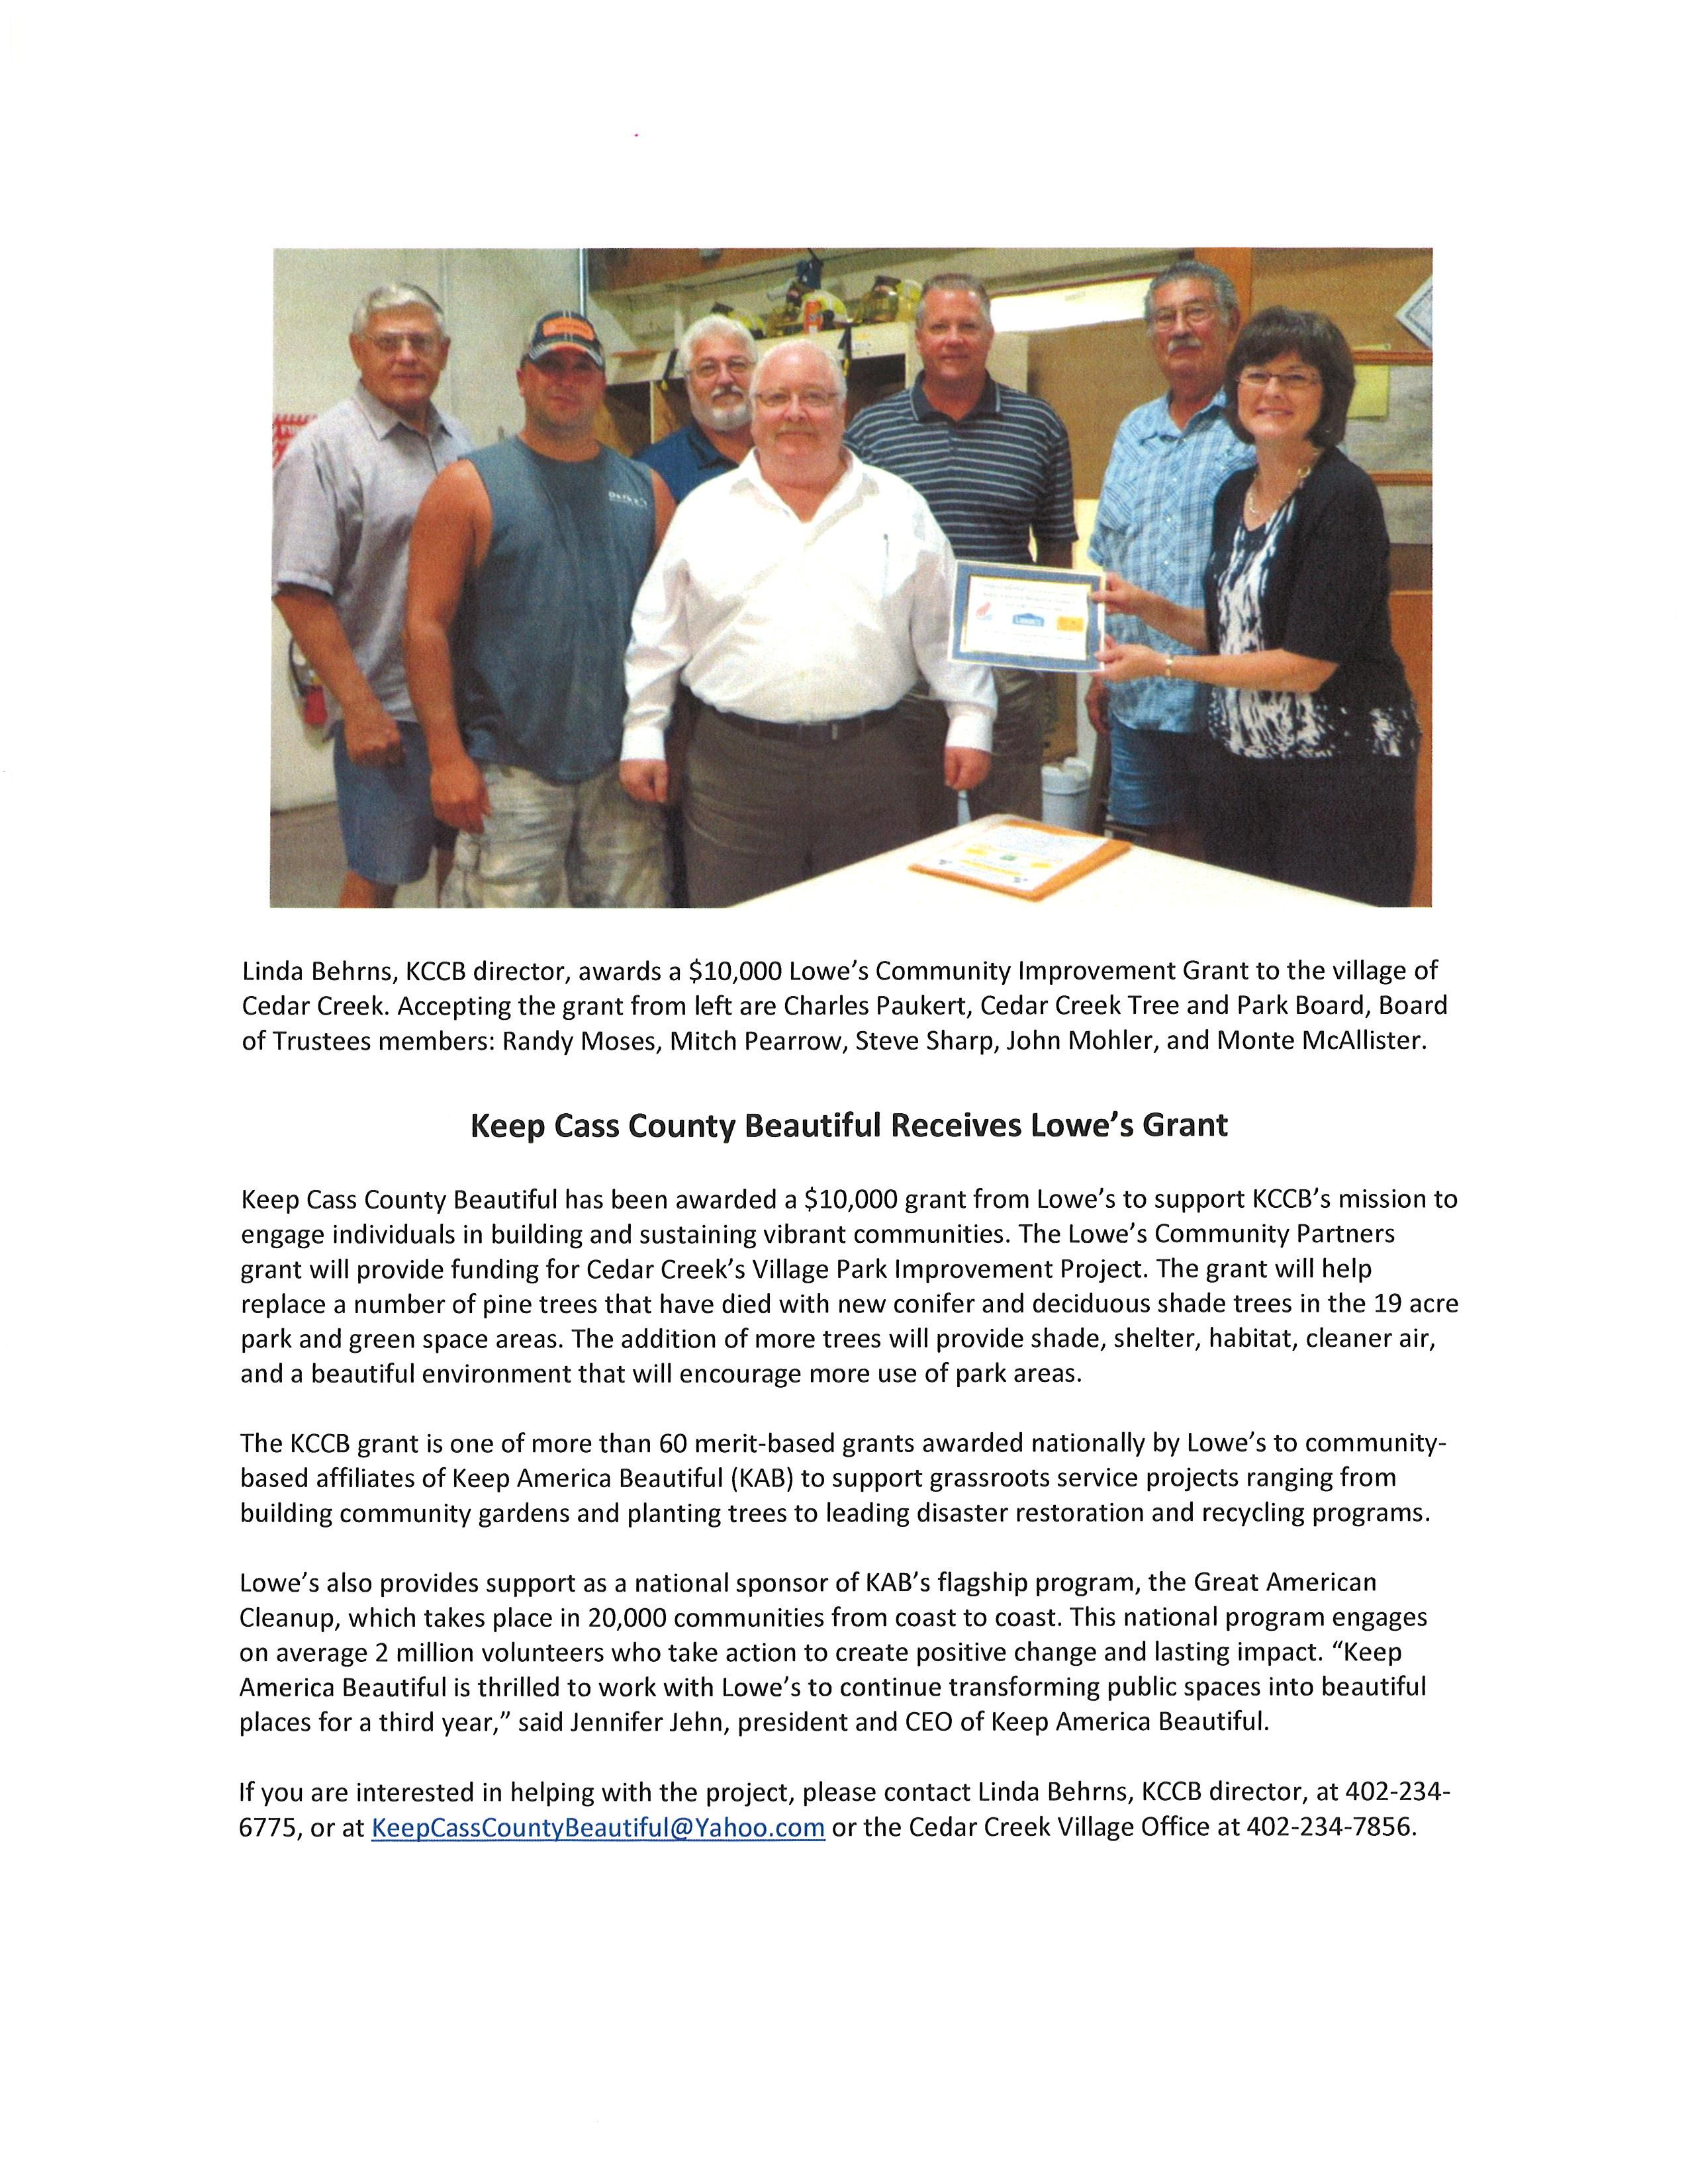 KCCB Lowes news release